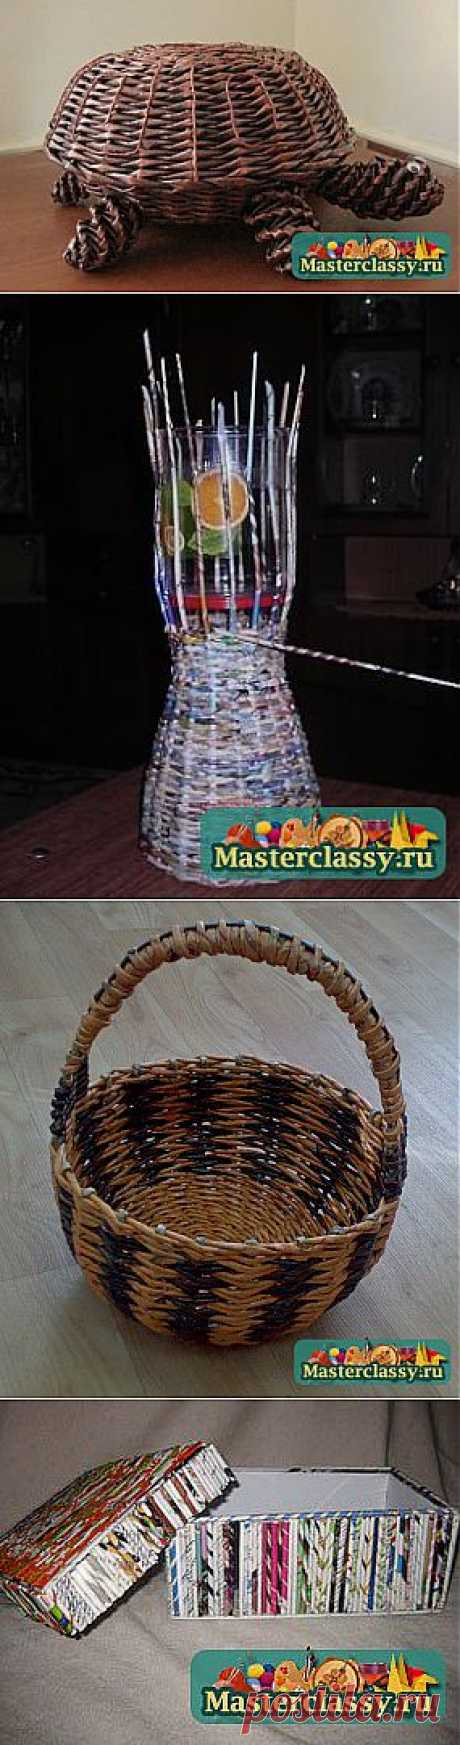 Weaving from newspaper tubules » Master classy - master classes for you